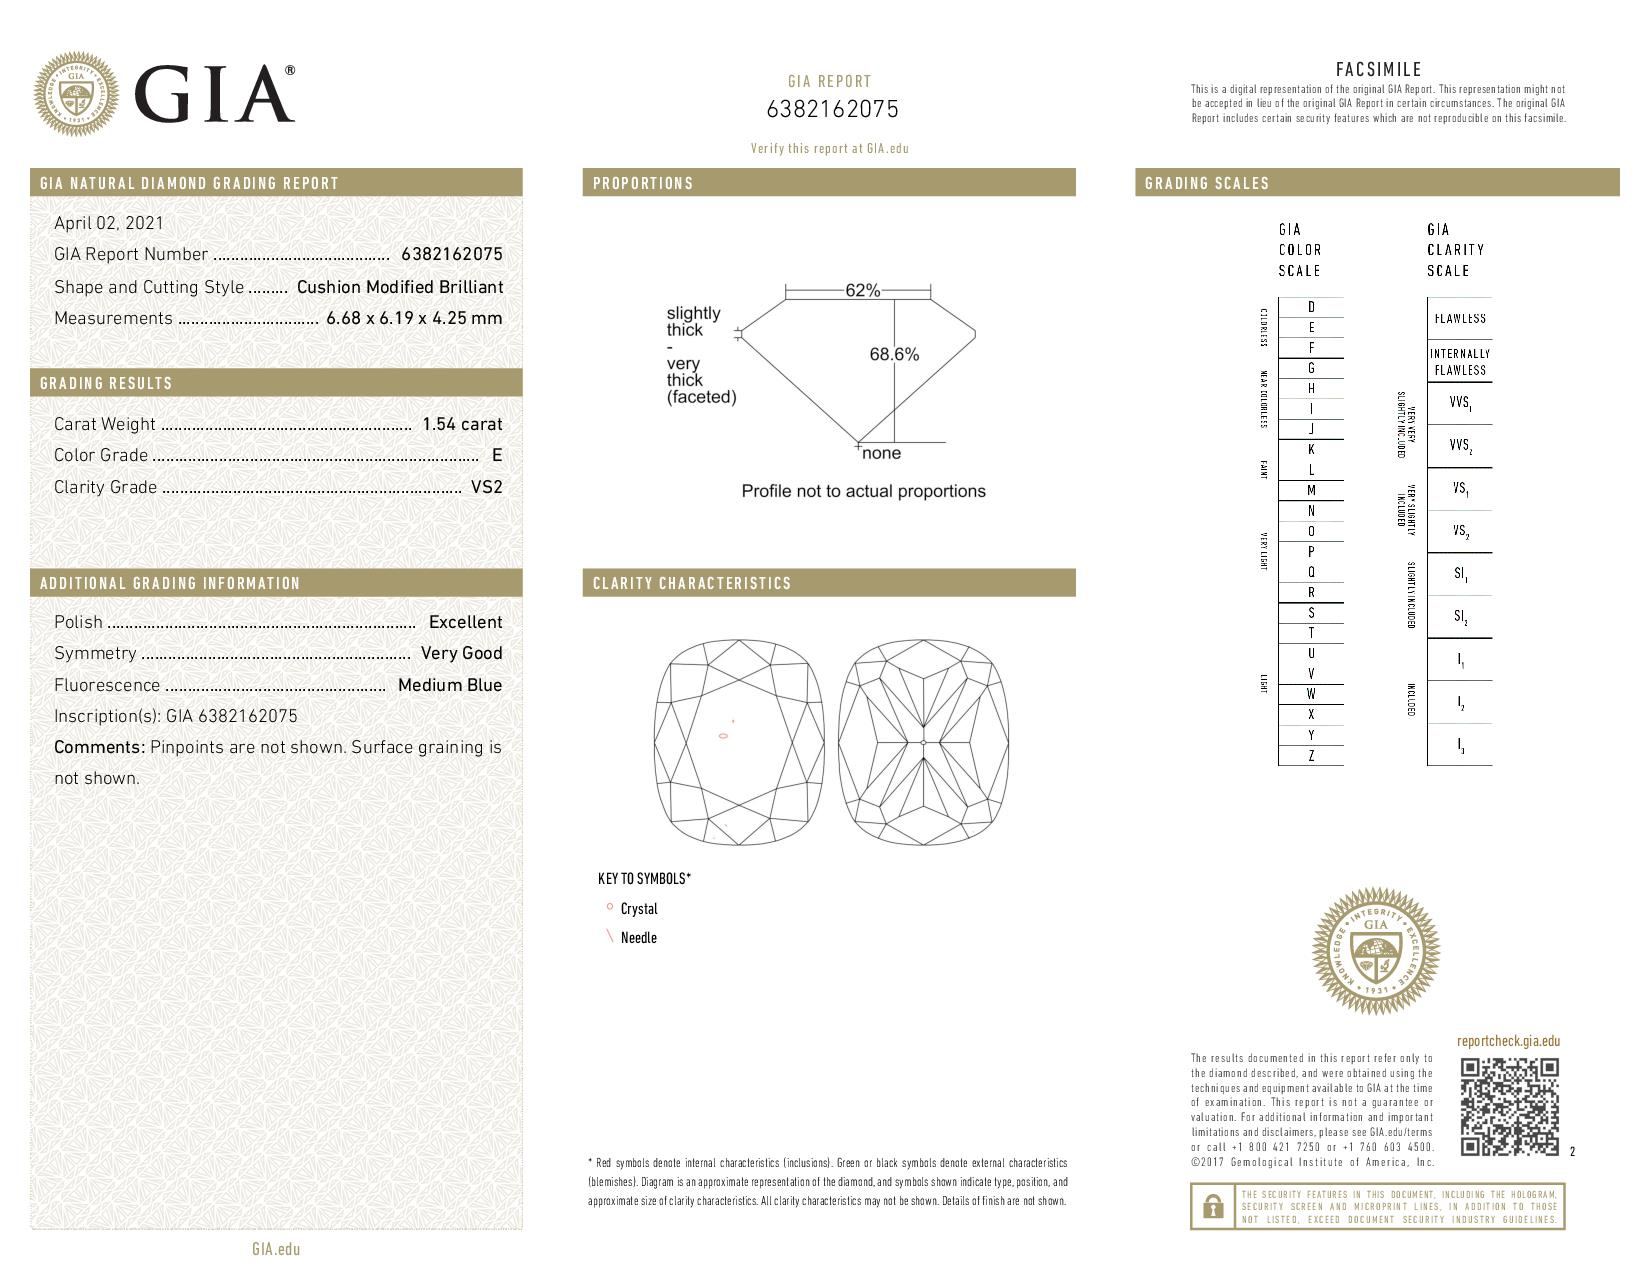 This is a 1.54 carat cushion shape, E color, VS2 clarity natural diamond accompanied by a GIA grading report.